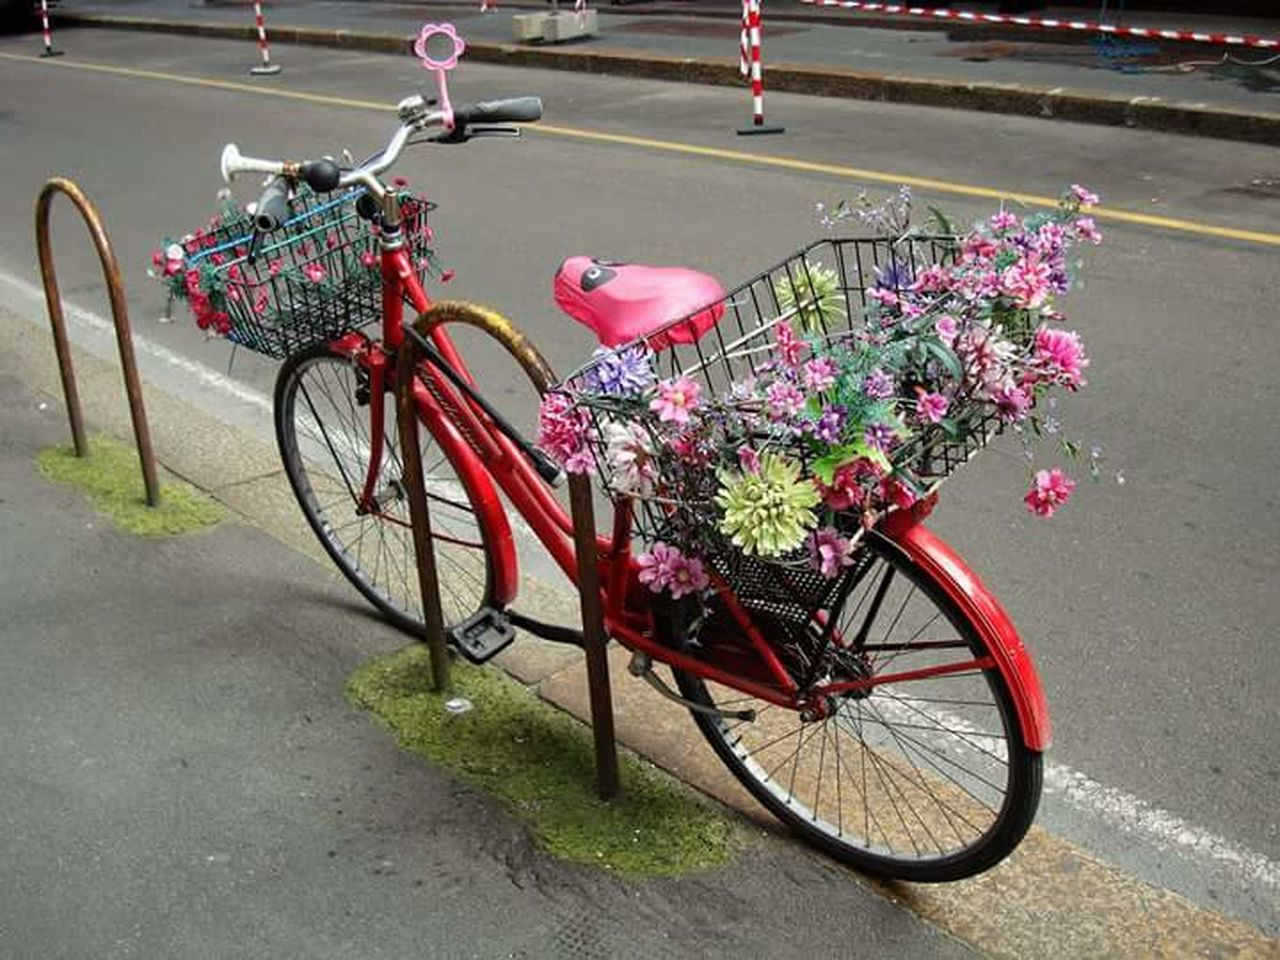 bicycle, transportation, mode of transport, land vehicle, flower, stationary, outdoors, day, no people, road, red, city, bicycle rack, nature